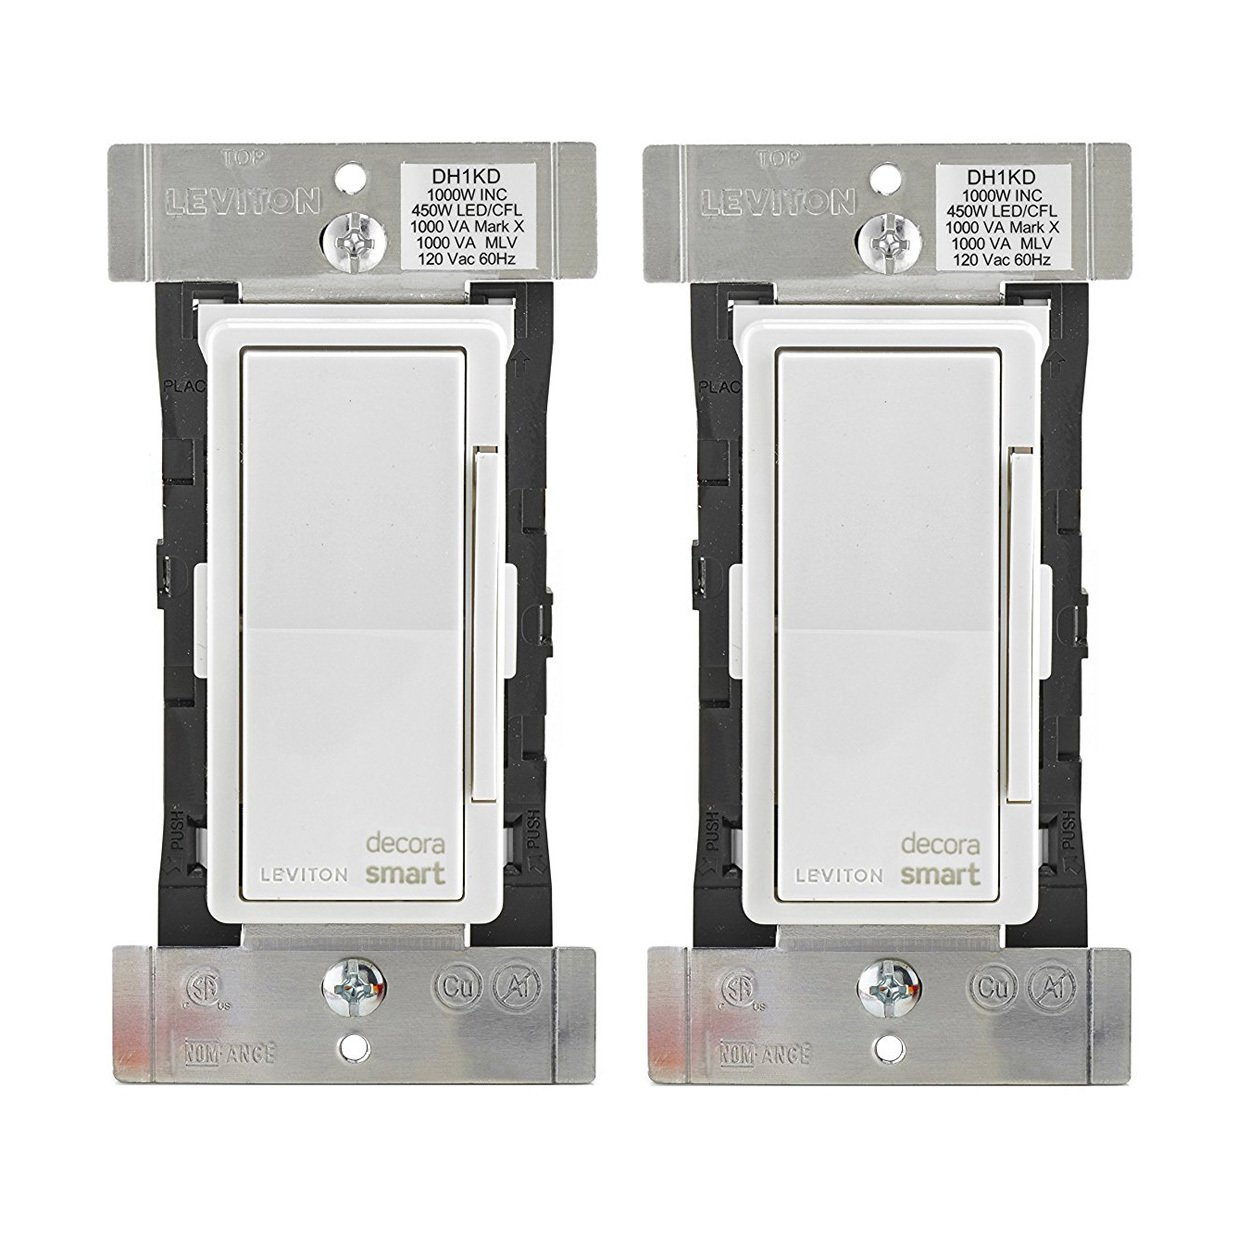 Leviton DH1KD-1BZ 1000W Decora Smart Dimmer, Works with Apple HomeKit (2 Pack)